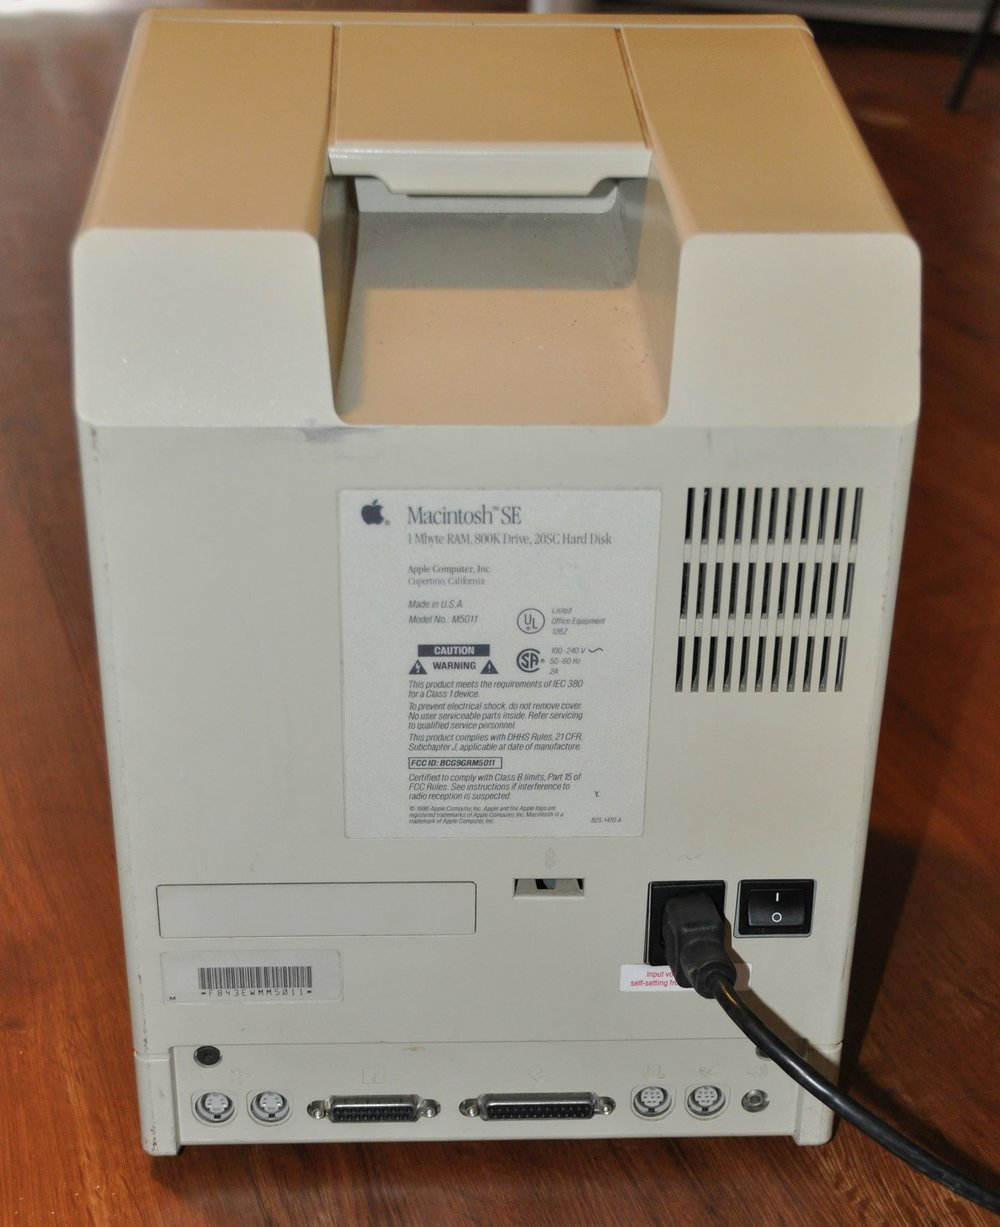 Macintosh SE rear view. This one was shipped to a client in Alaska.